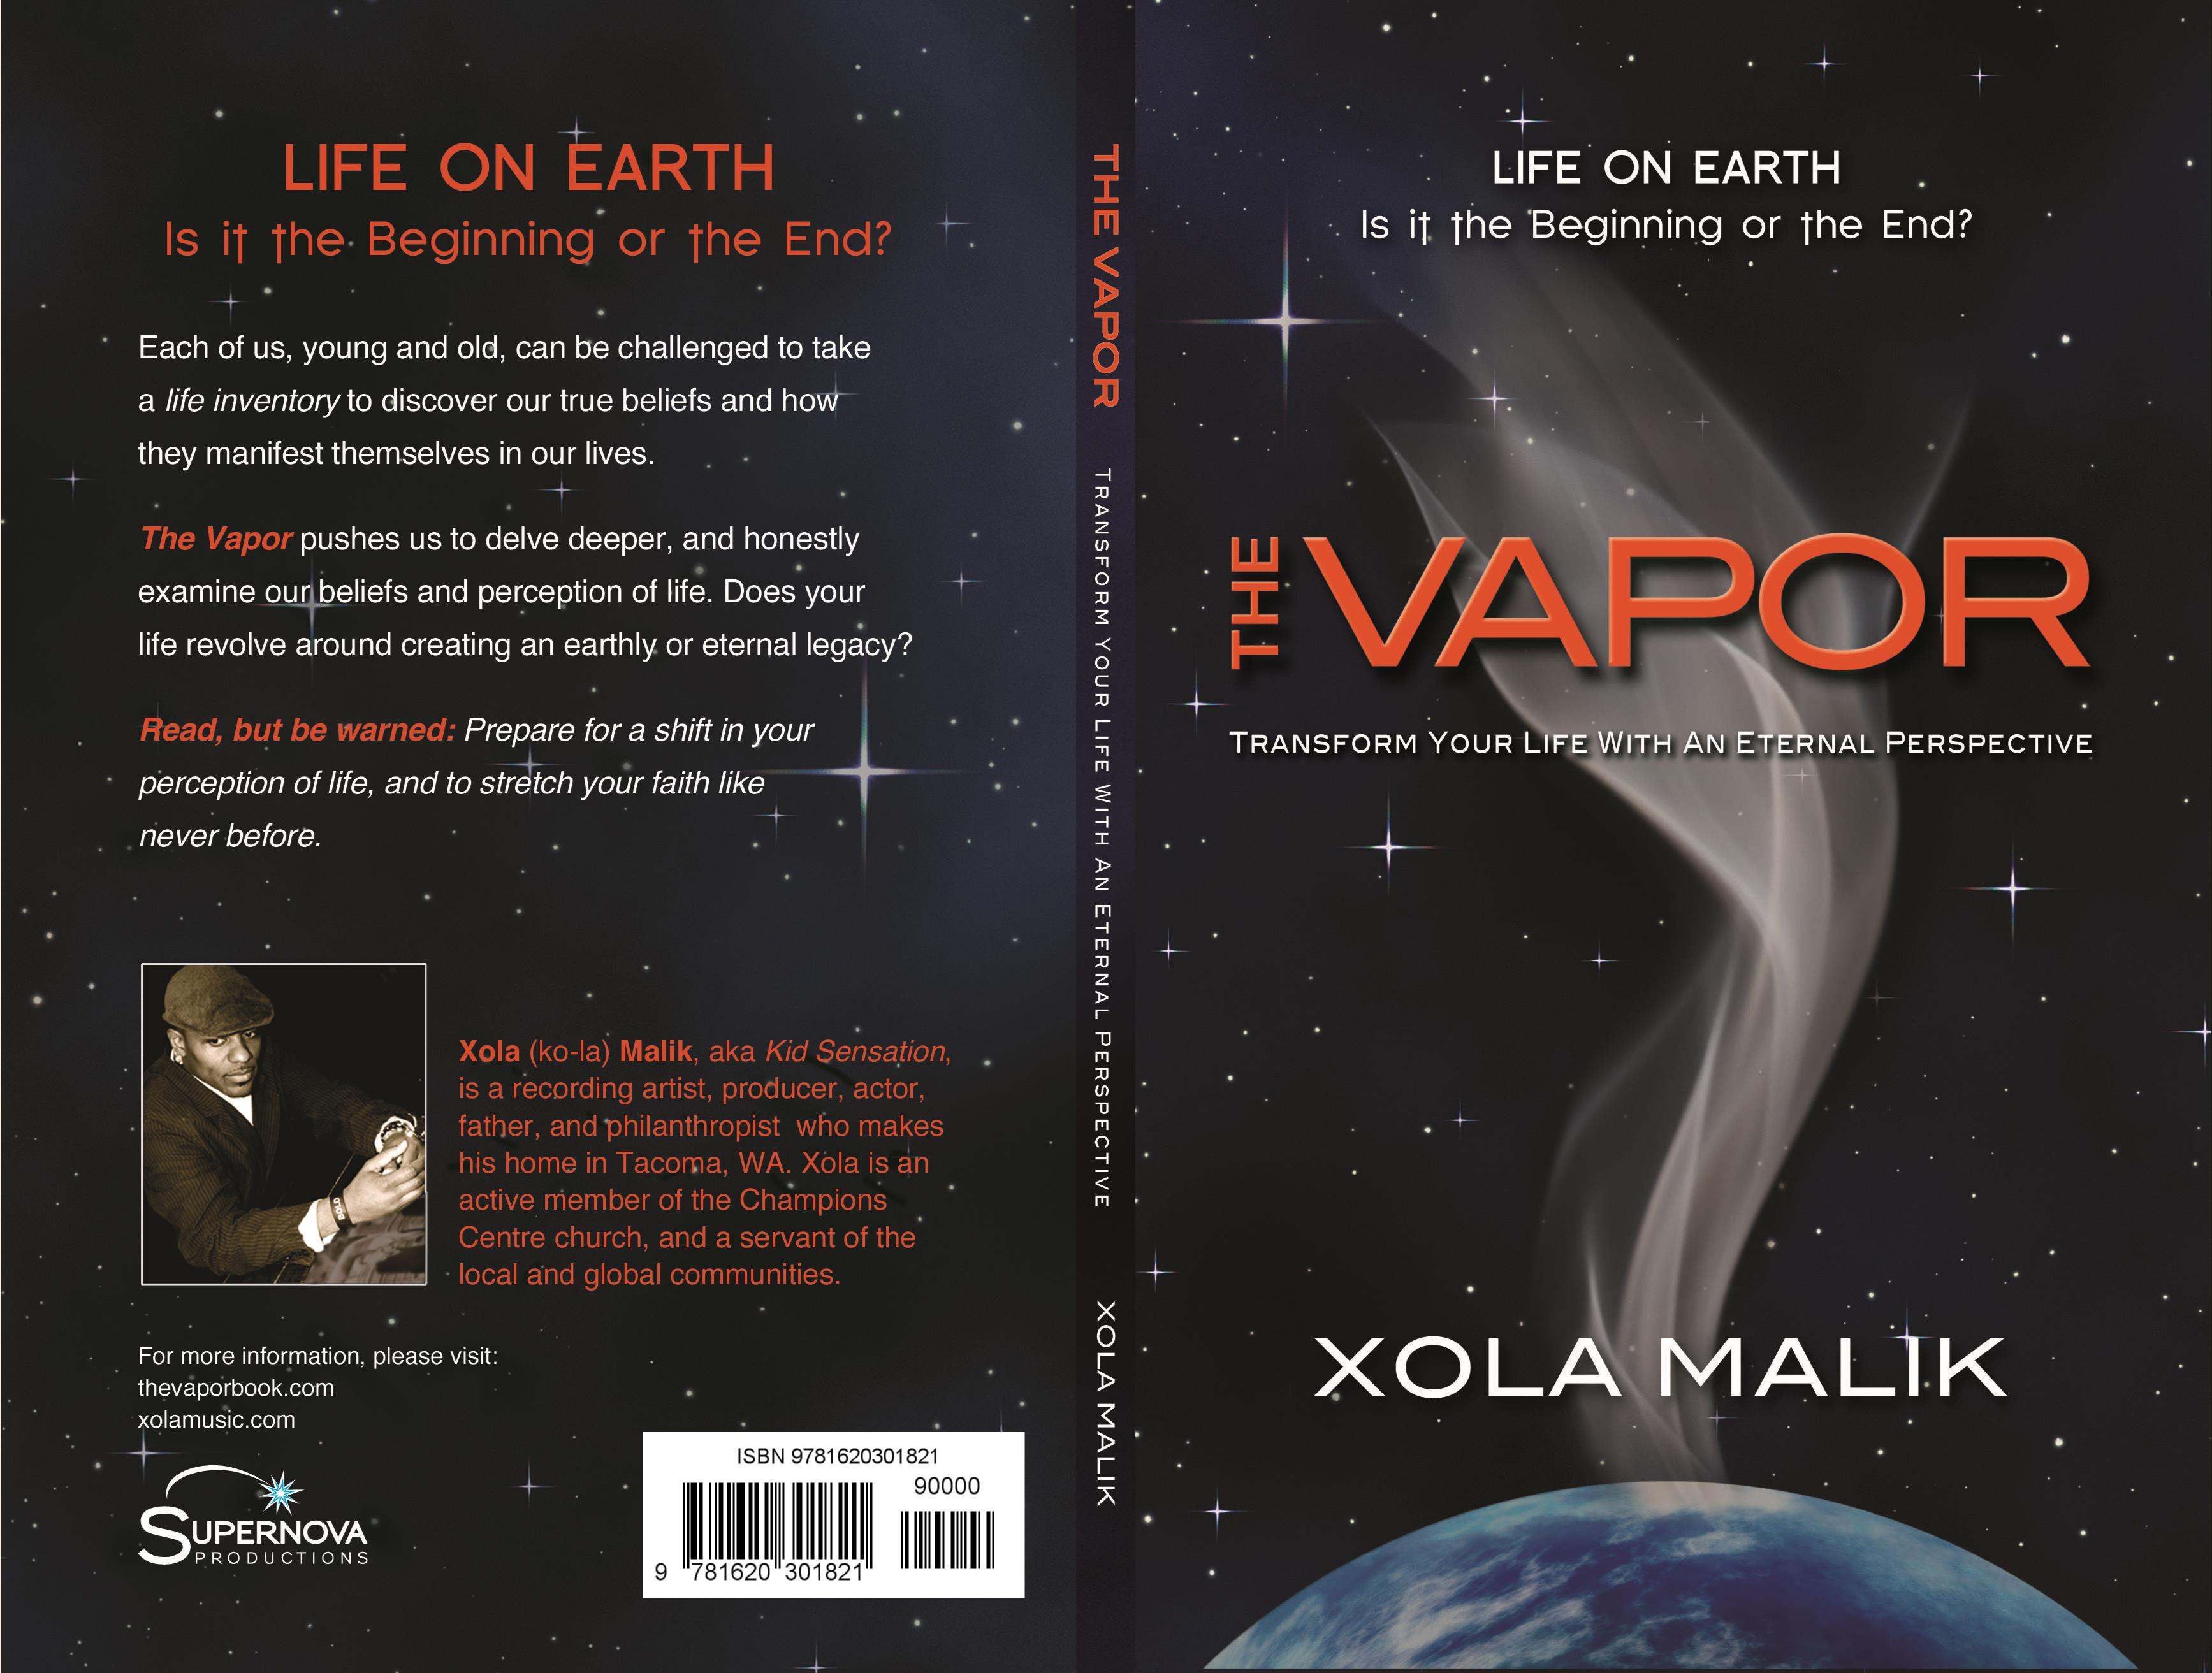 The Vapor cover image